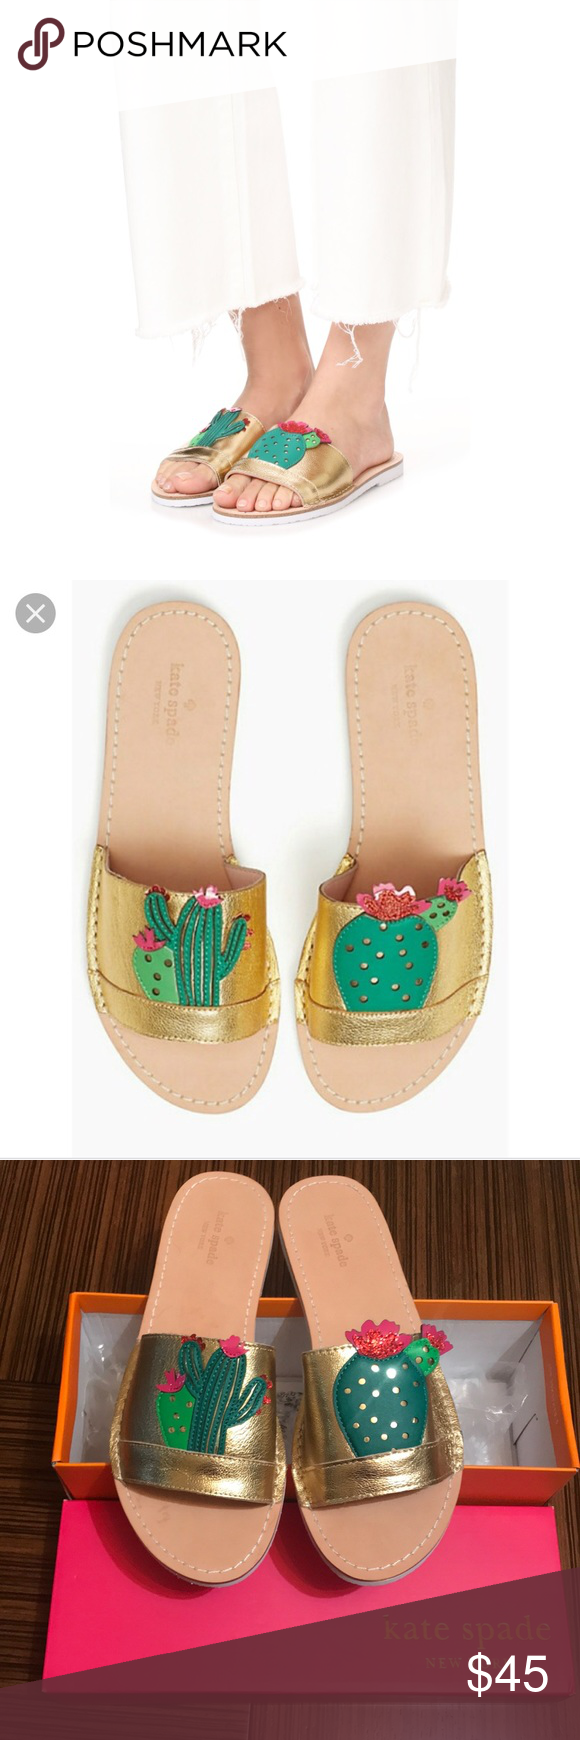 44cb46dd818b Kate spade iguana flats slides sandals Super fun style Cactus detail Gold  tumbled leather kate spade Shoes Sandals